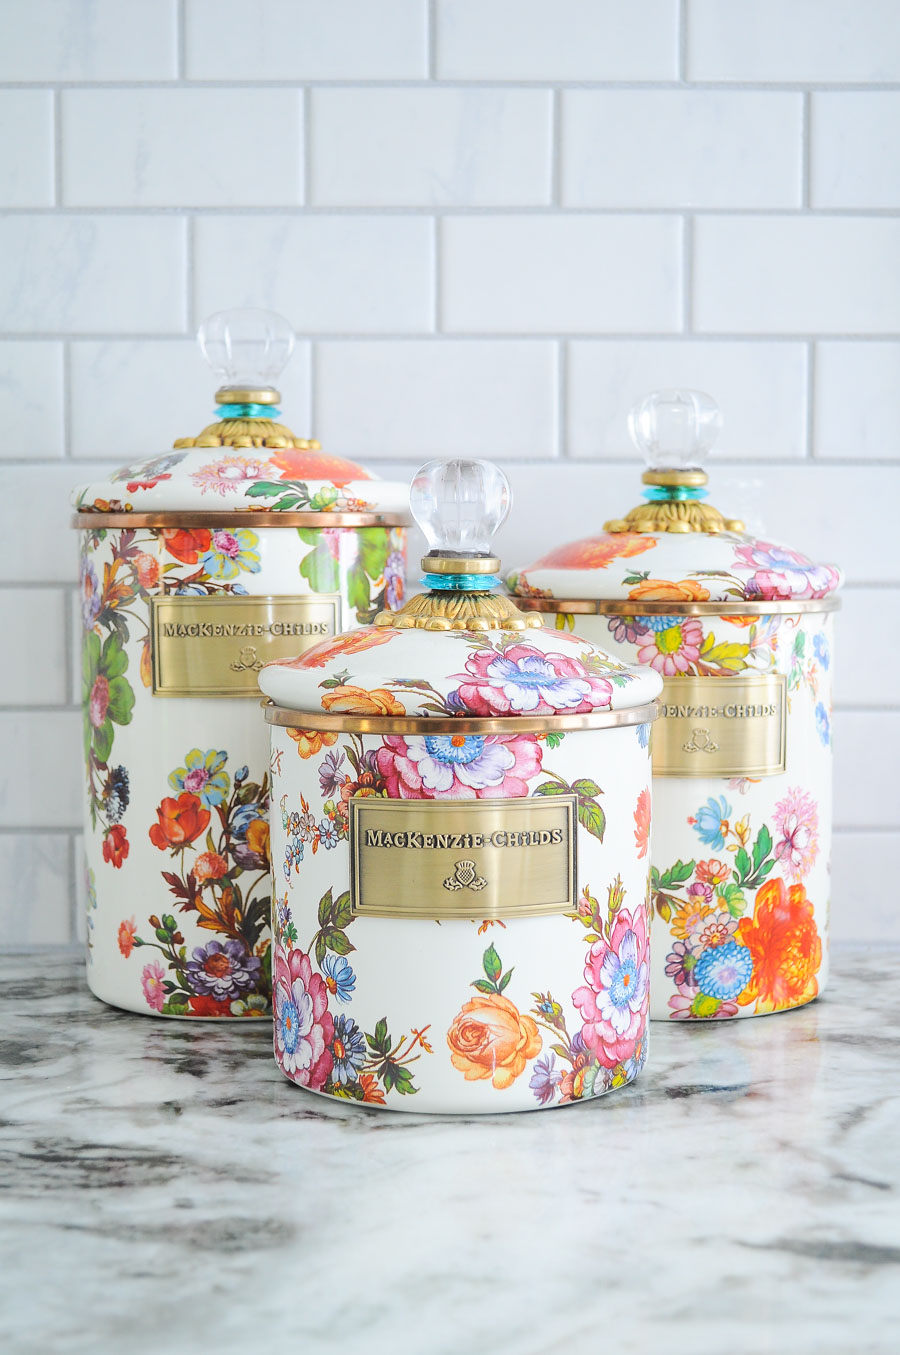 These floral and crystal kitchen canisters are gorgeous!